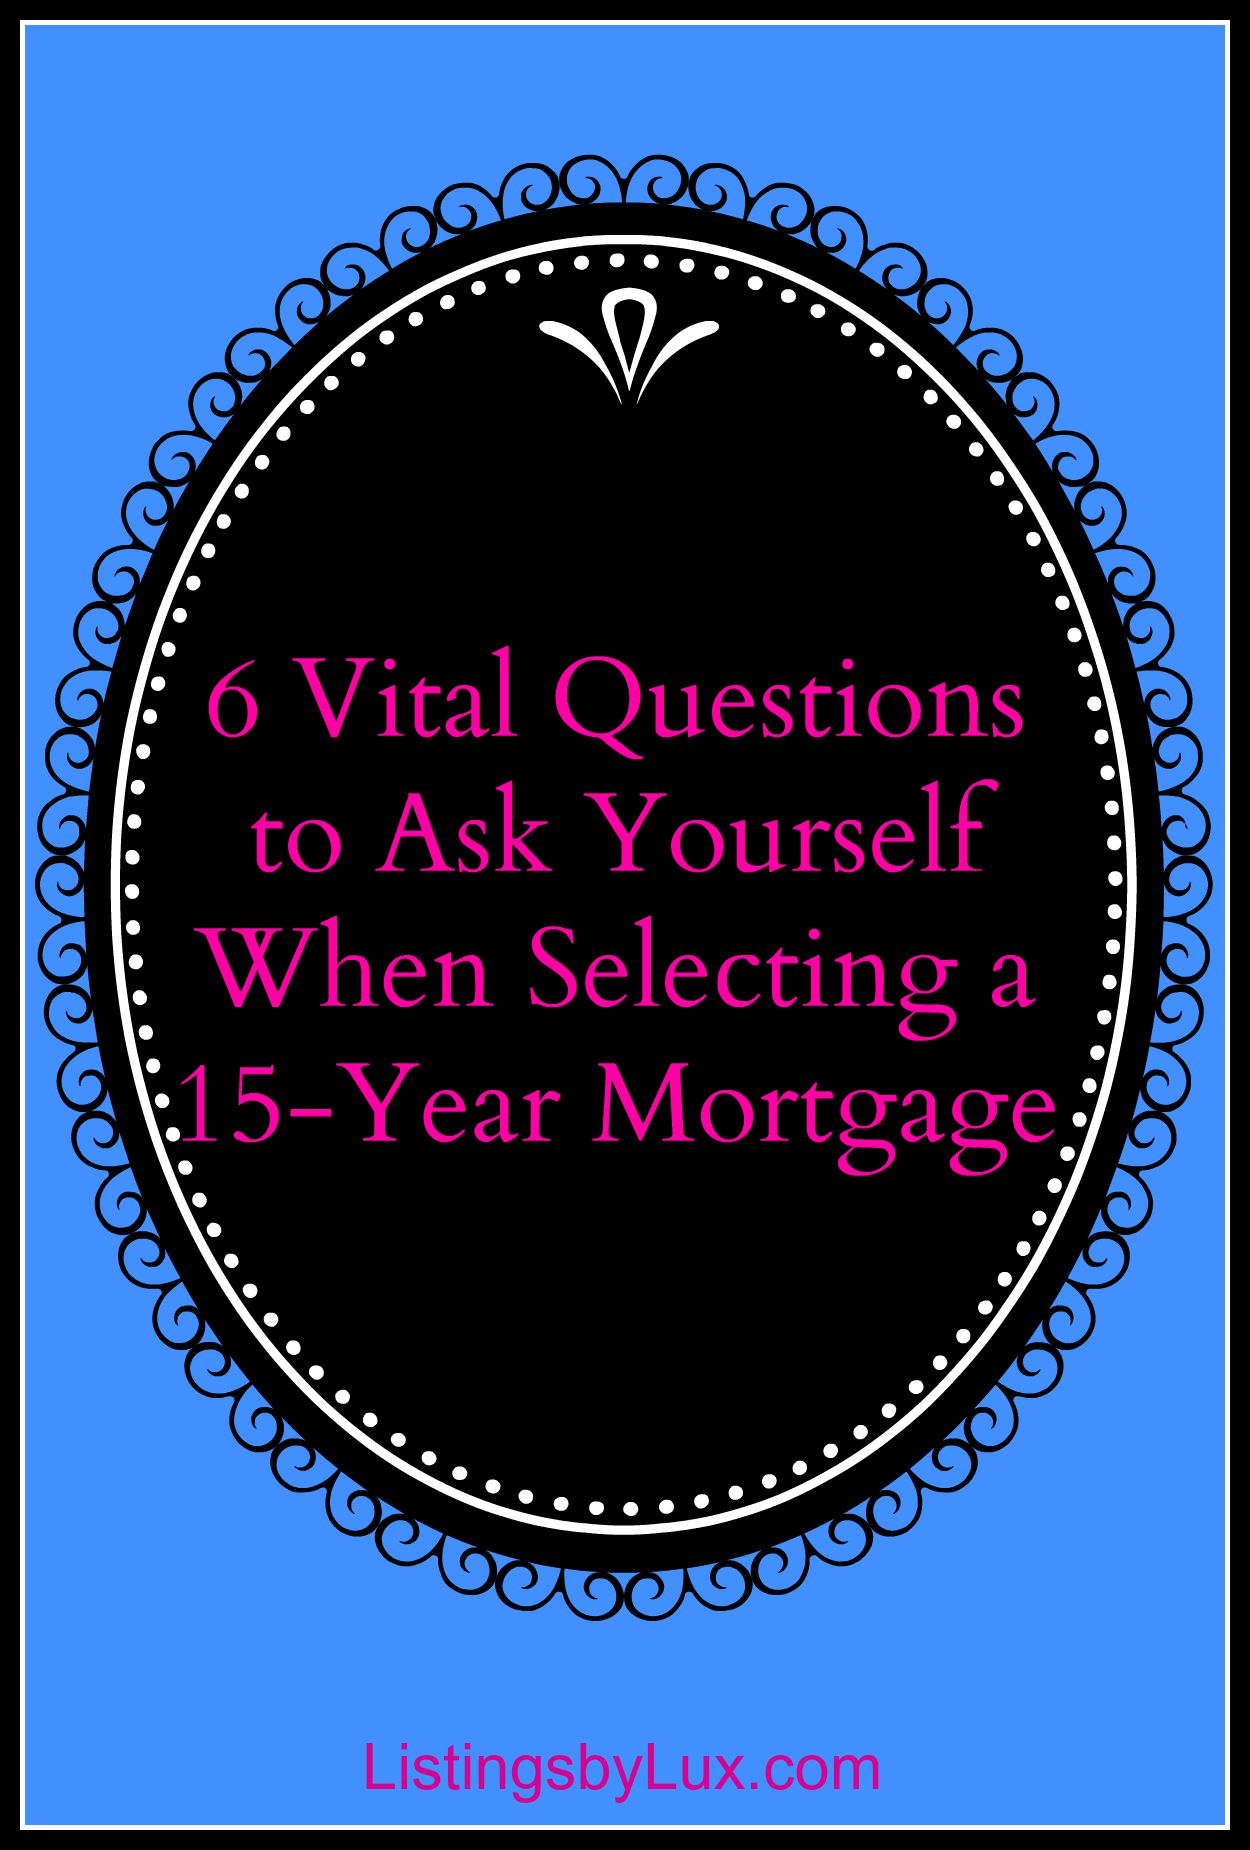 6 Vital Questions to ask when selecting a 15 year mortgage